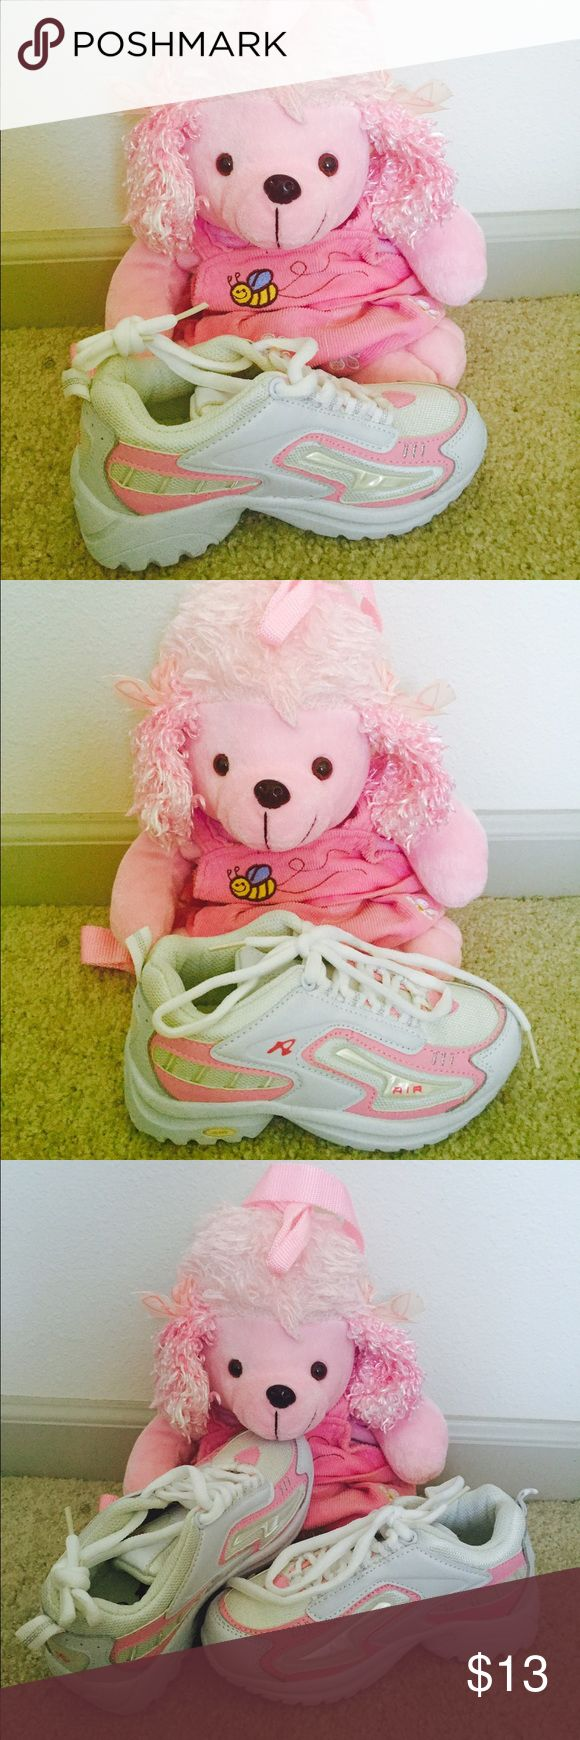 BRAND NEW white and pink little girls tennis shoes BRAND NEW White and pink tennis shoes Shoes